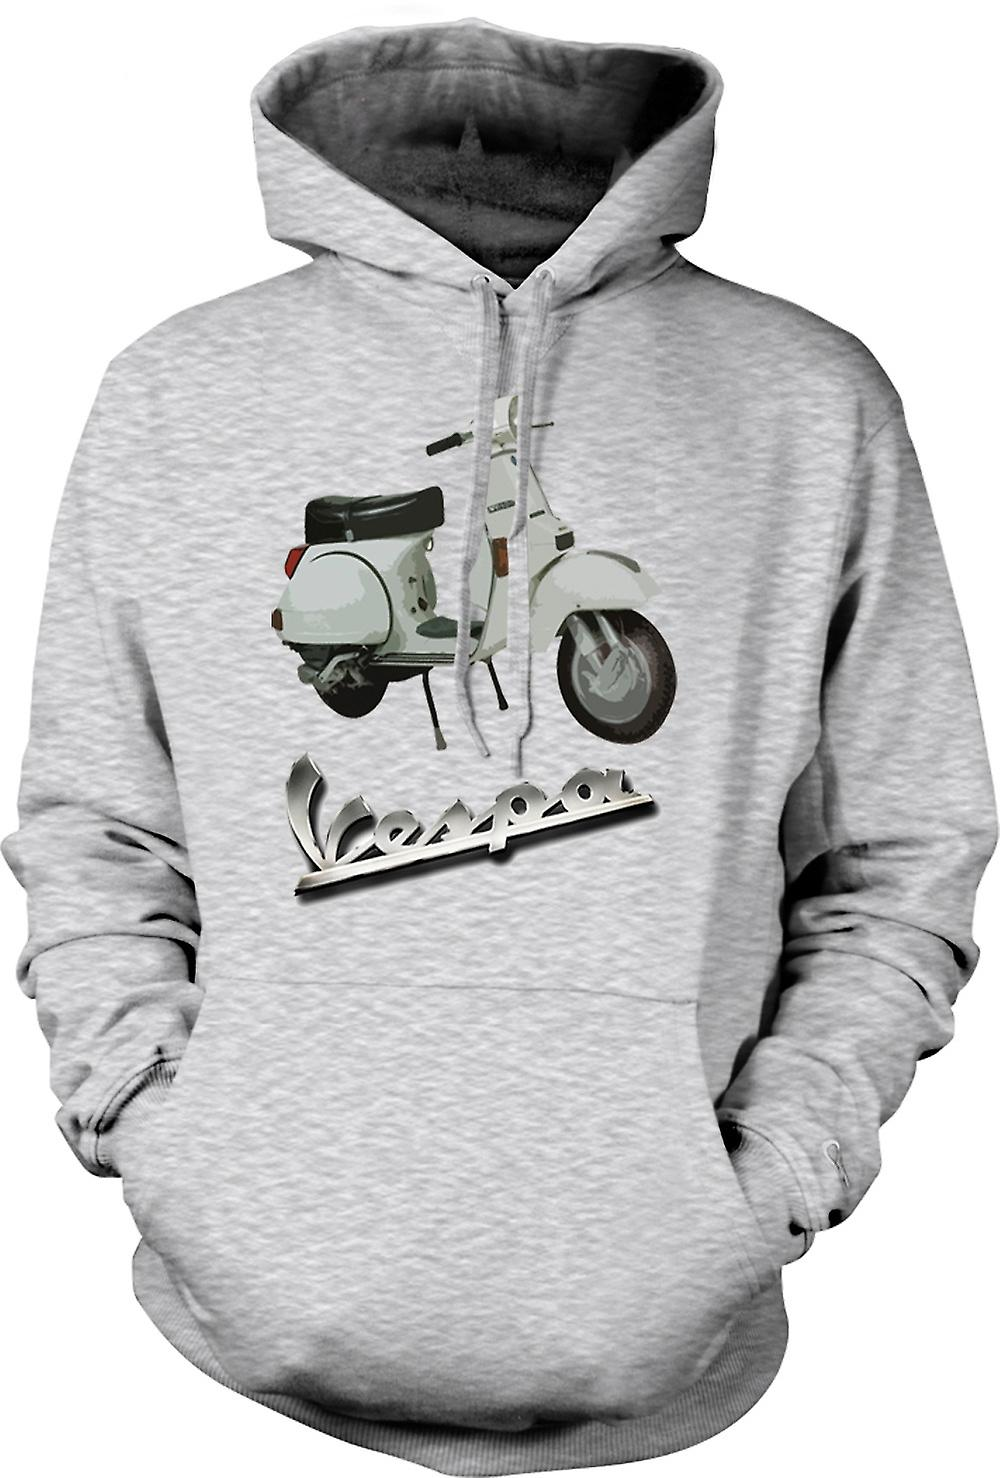 Mens Hoodie - Vespa PX 200 - Classic Scooter